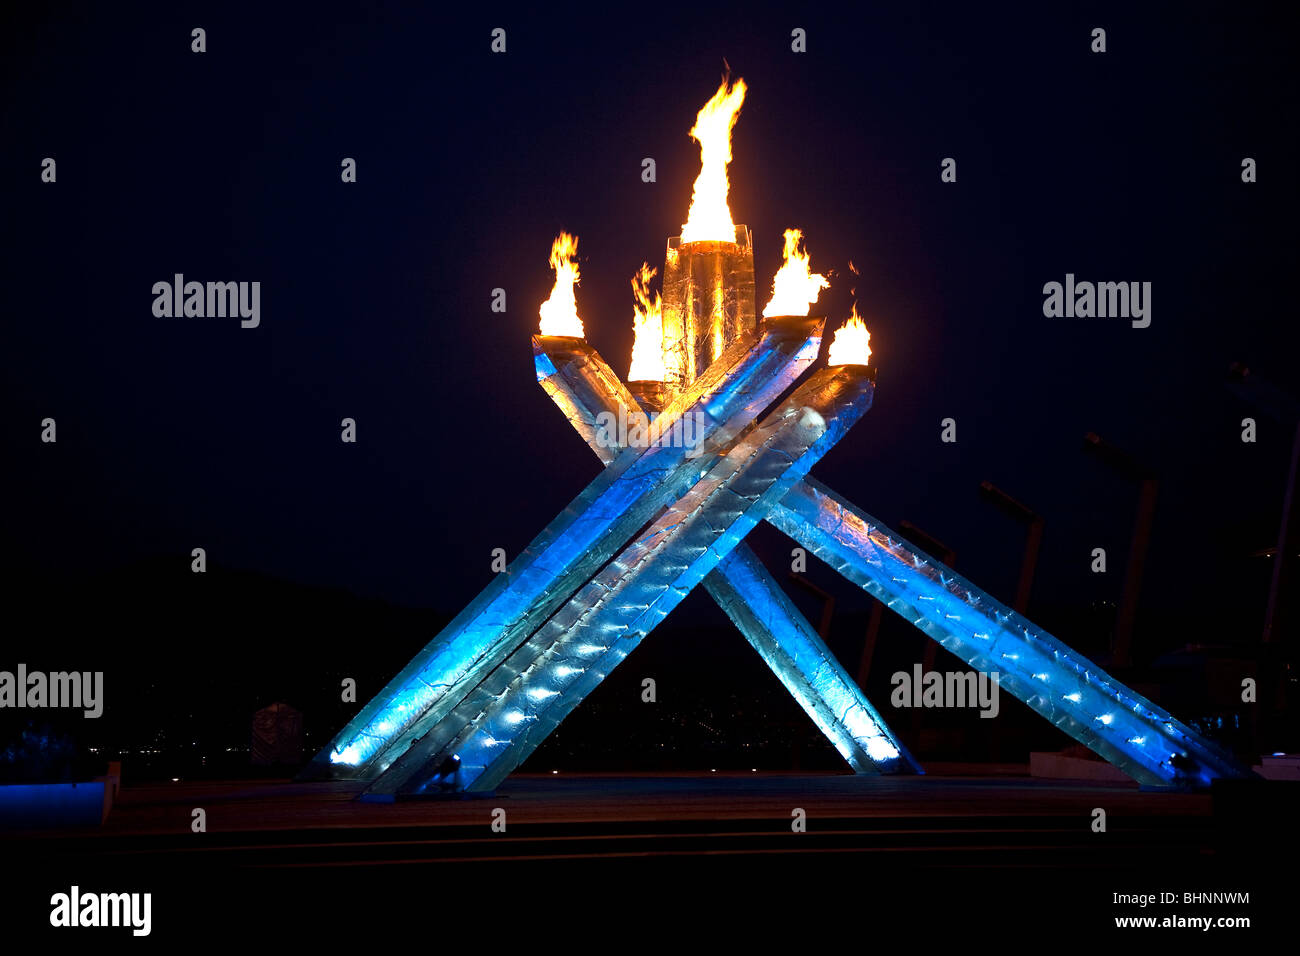 The Olympic Cauldron burns against a darkening sky during the Vancouver 2010 Winter Olympic Games - Stock Image